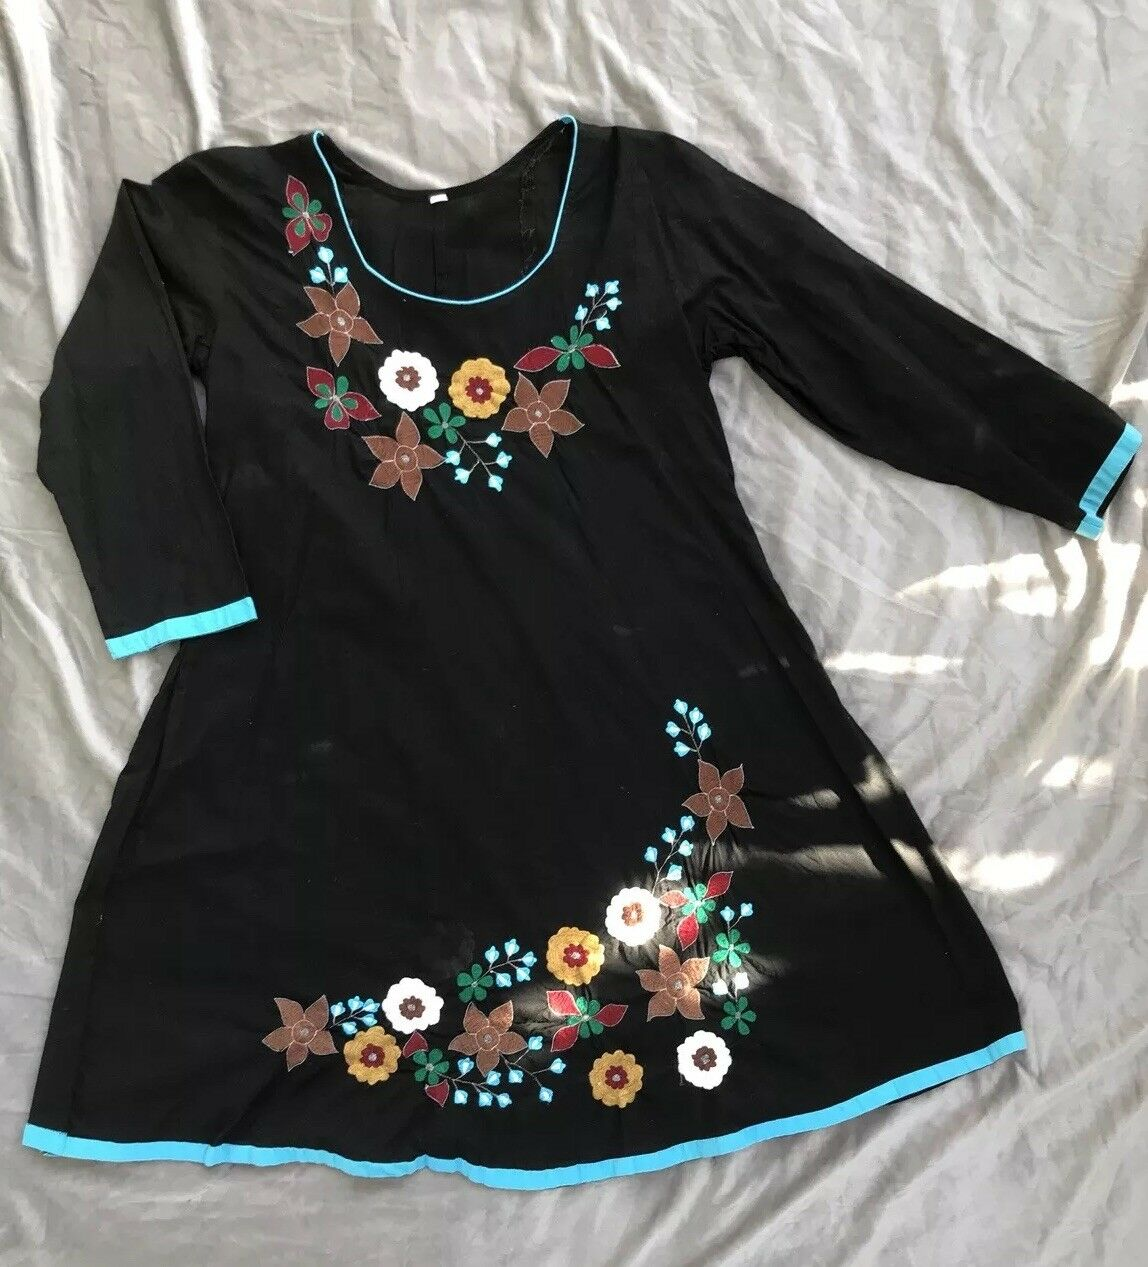 VINTAGE 70s HAND-EMBROIDERED MEXICAN FLORAL HIPPIE BOHO Dress